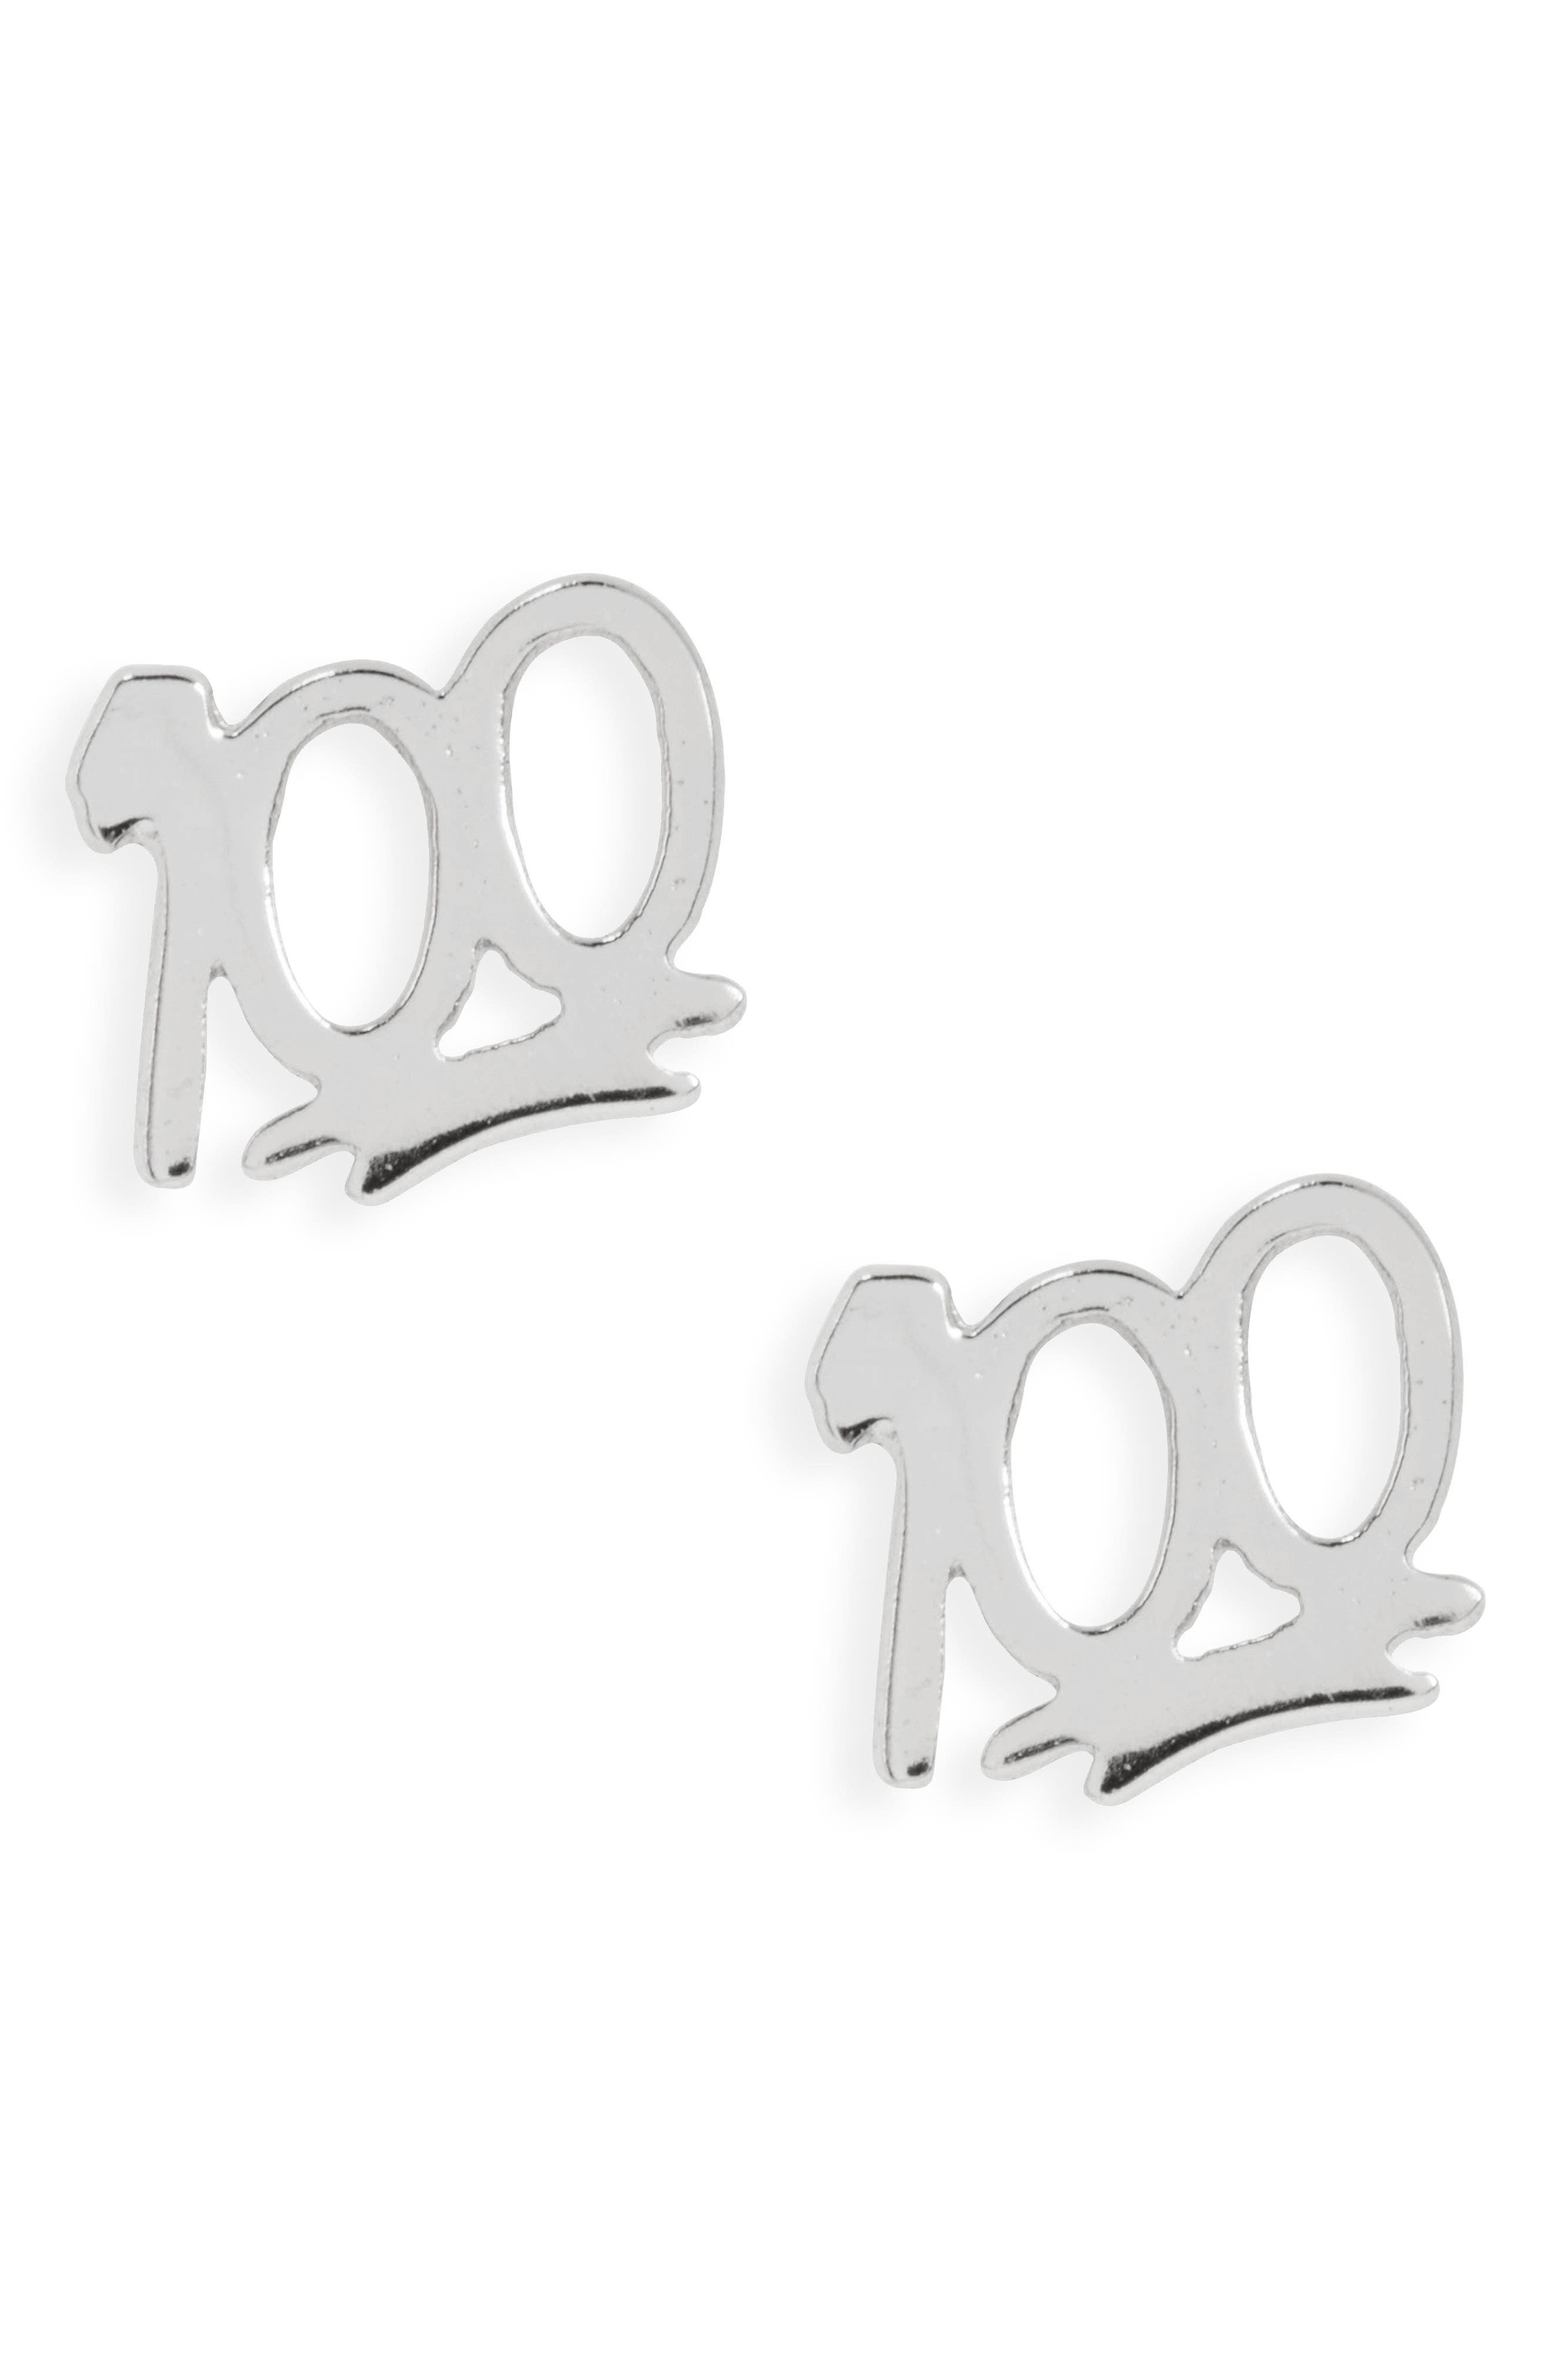 100 Stud Earrings,                             Main thumbnail 1, color,                             SILVER